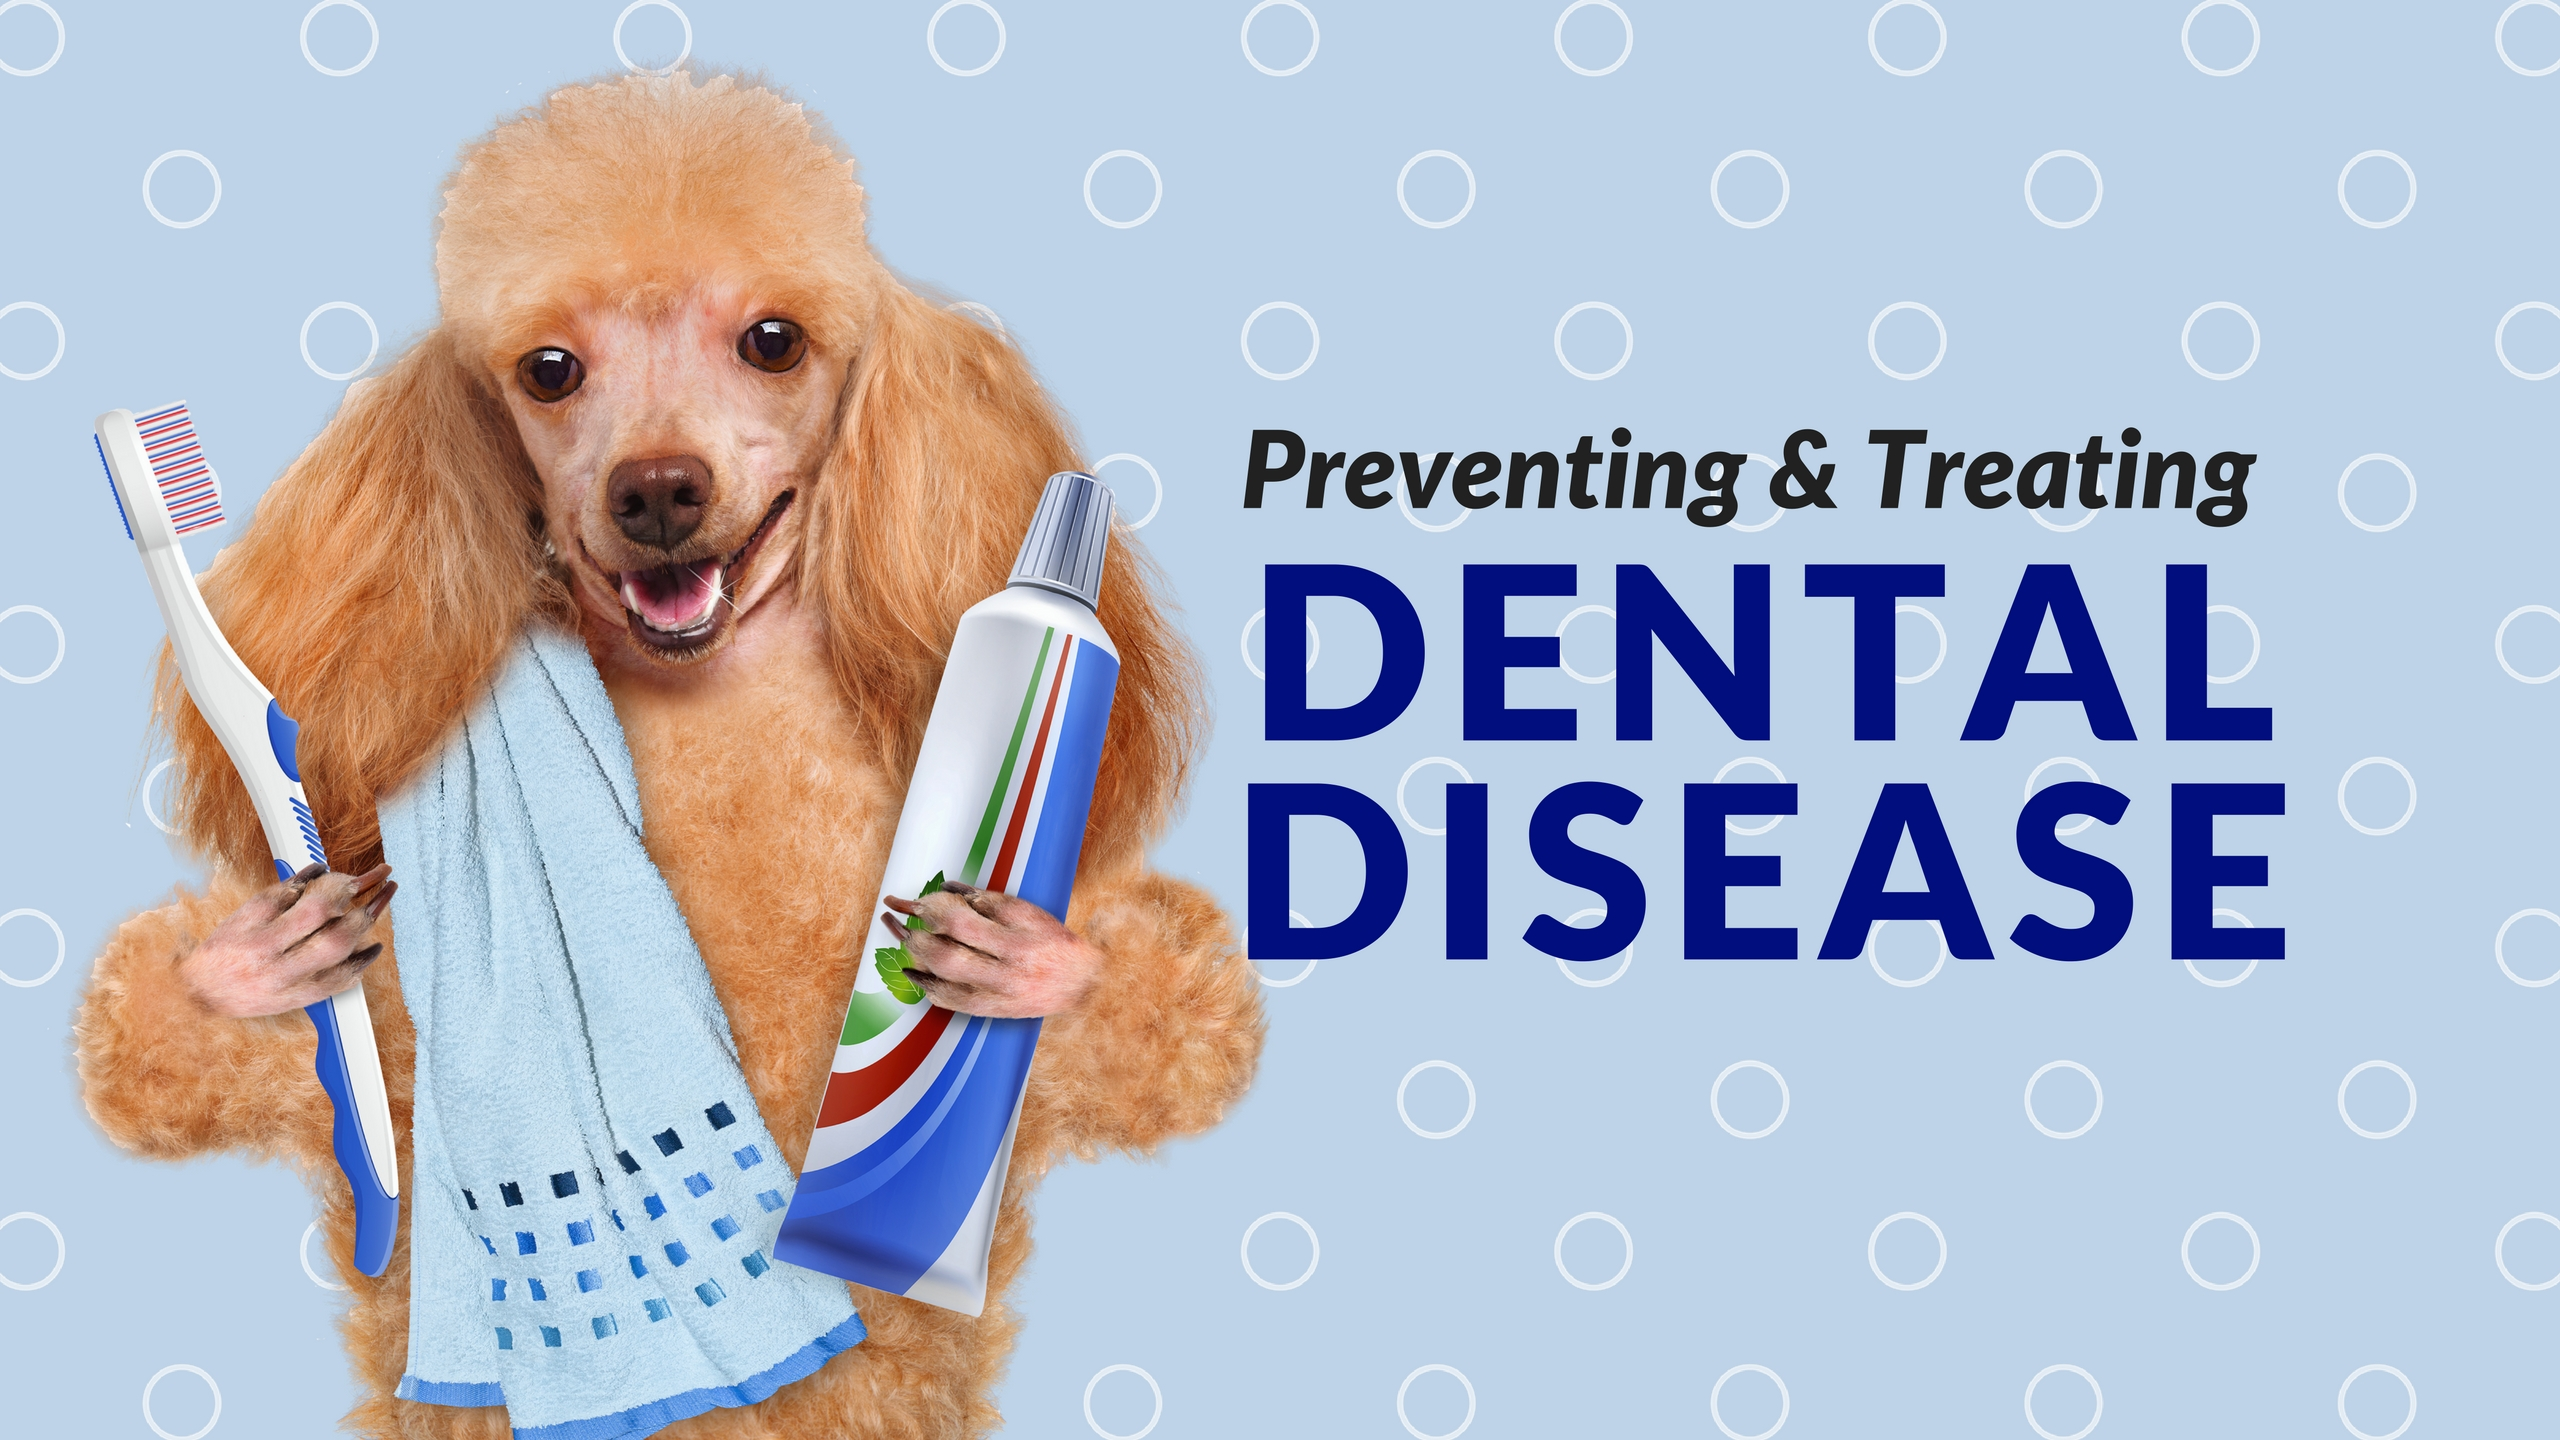 7 Tips for Preventing and Treating Dental Disease in Dogs